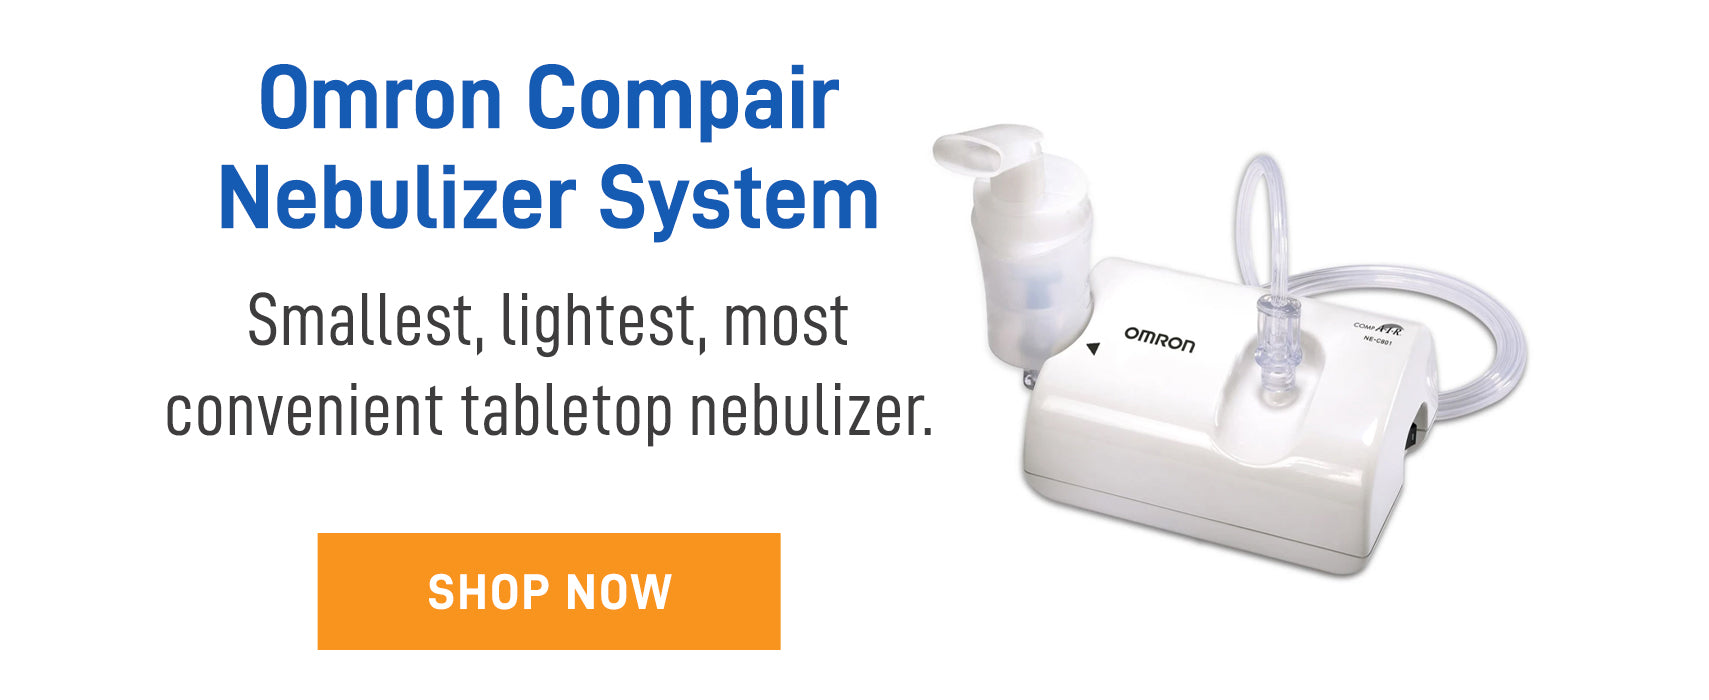 The top selling Omron Compair